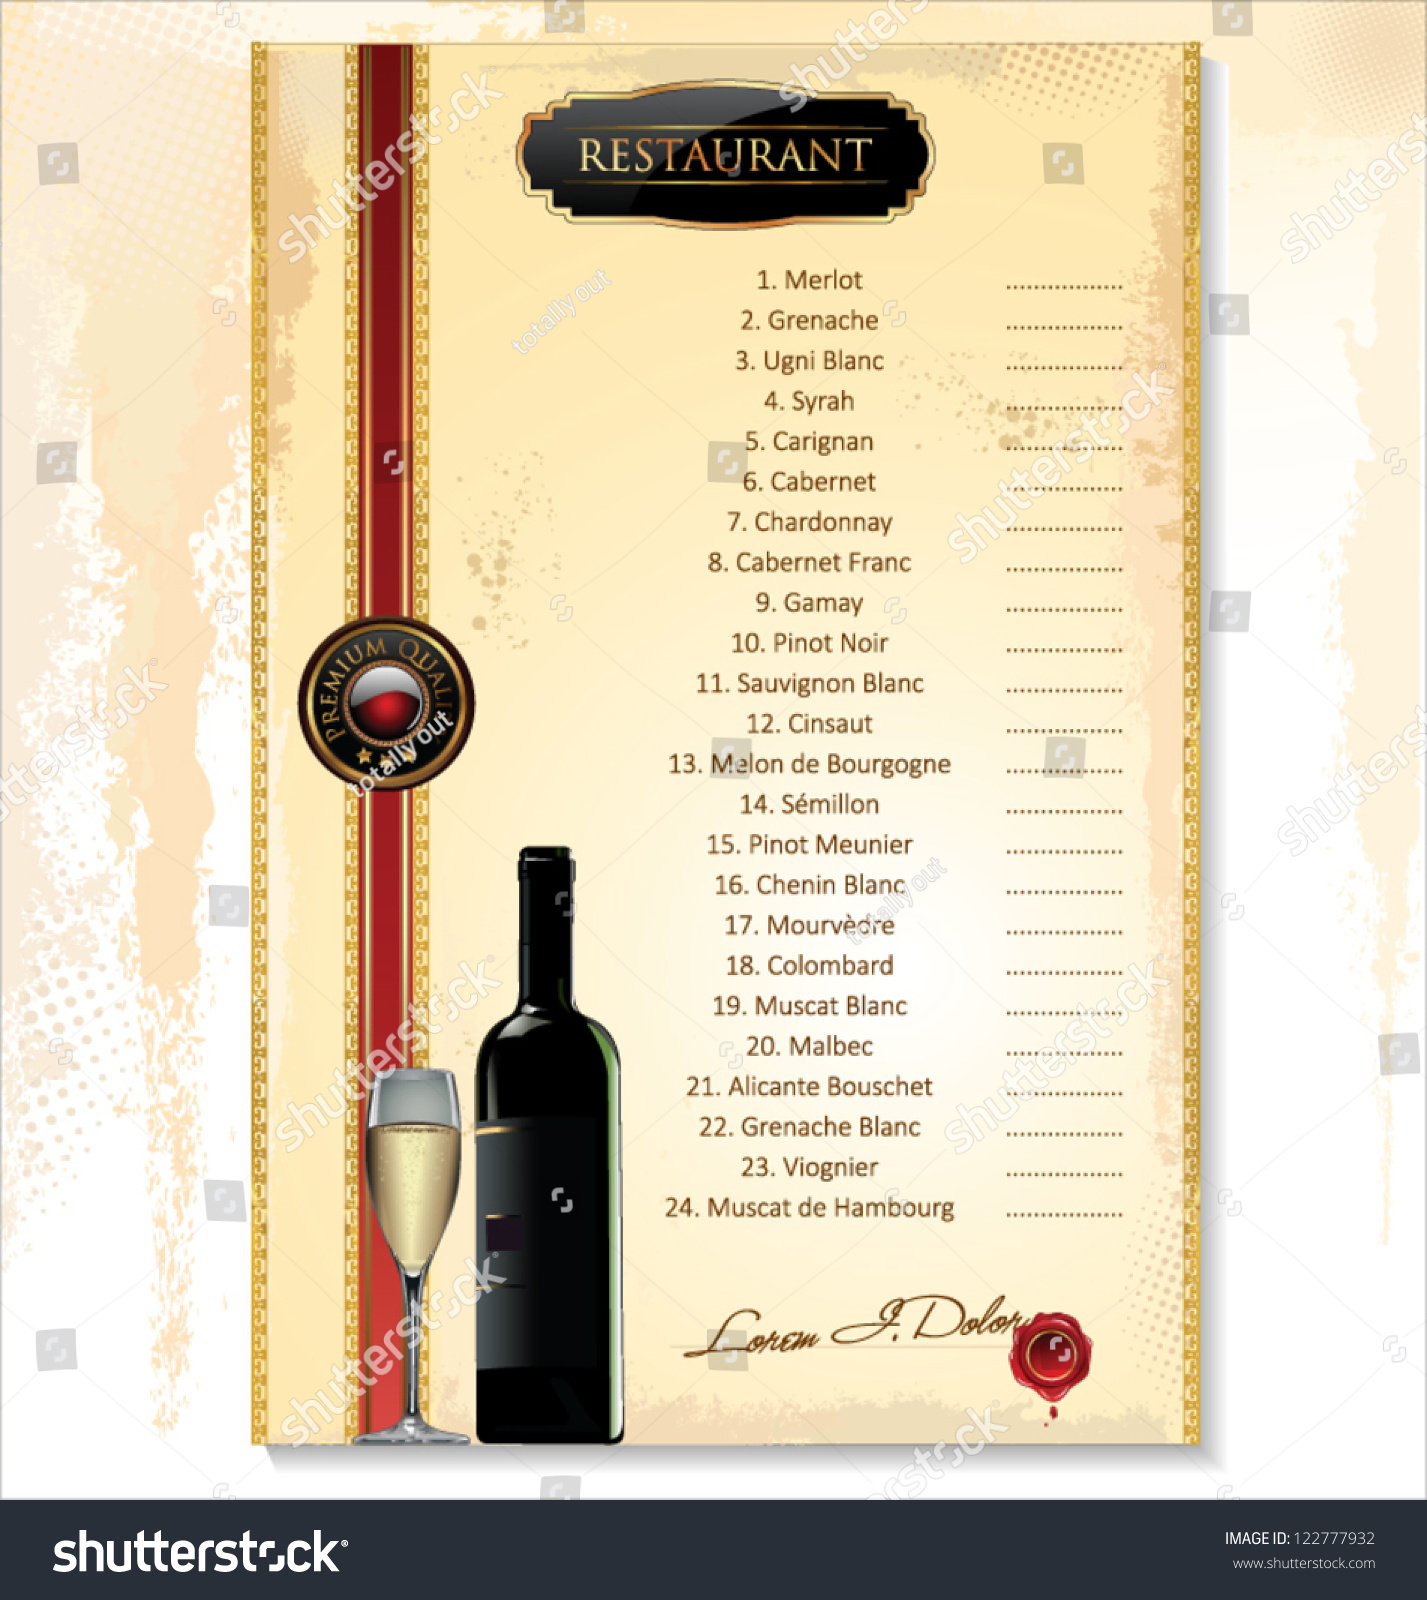 wine dinner menu template - wine menu template price list stock vector 122777932